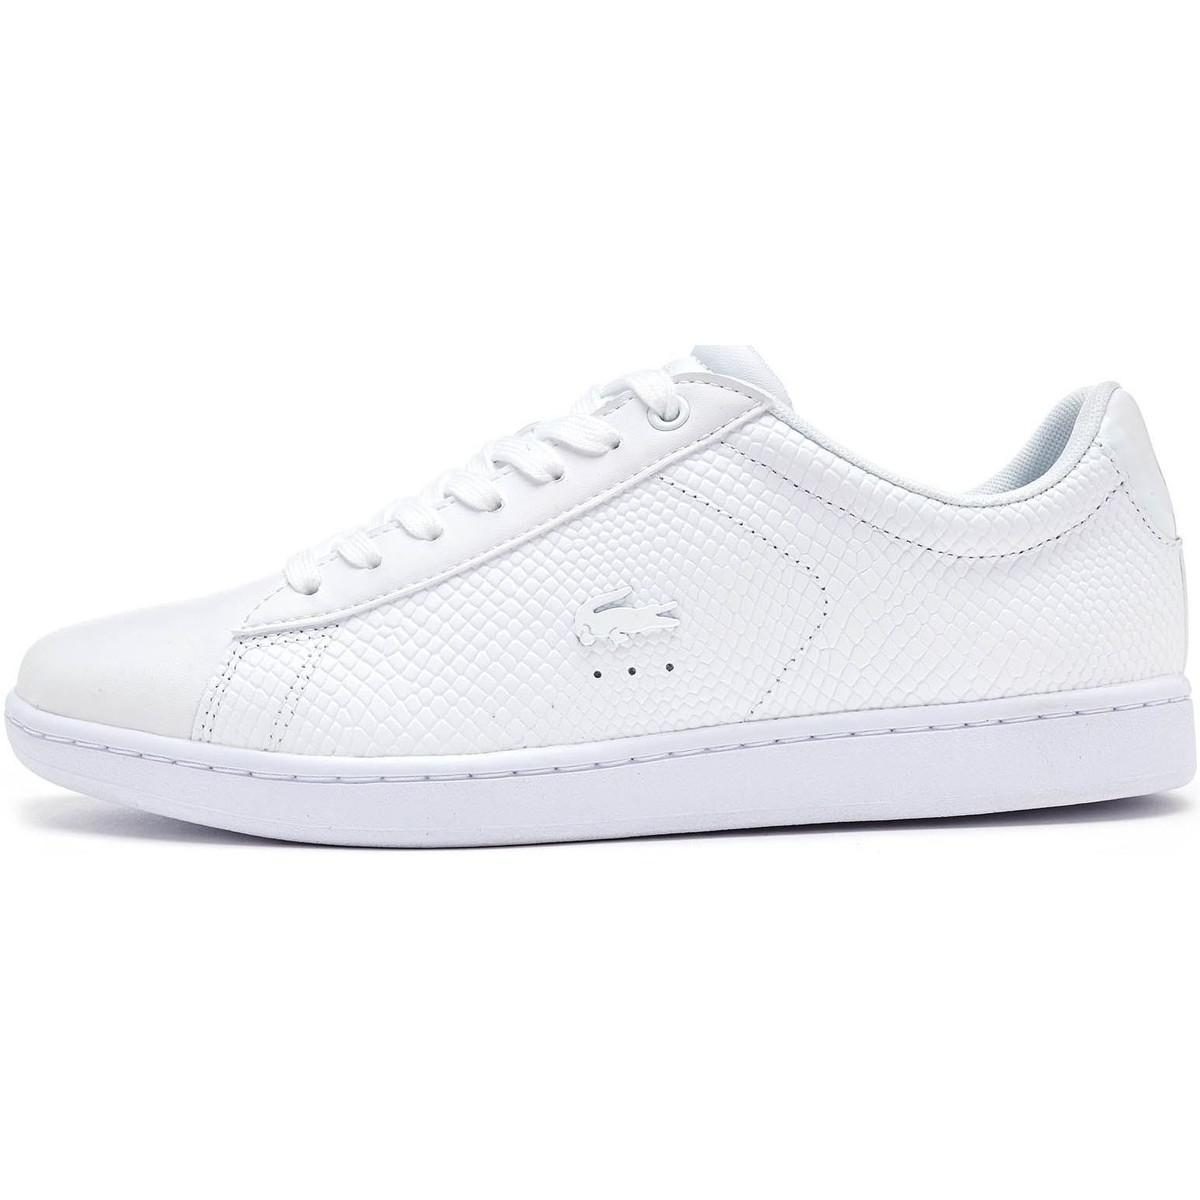 318d980503fb Lacoste Carnaby Evo 317 3 Spw Leather Trainers In Triple White ...